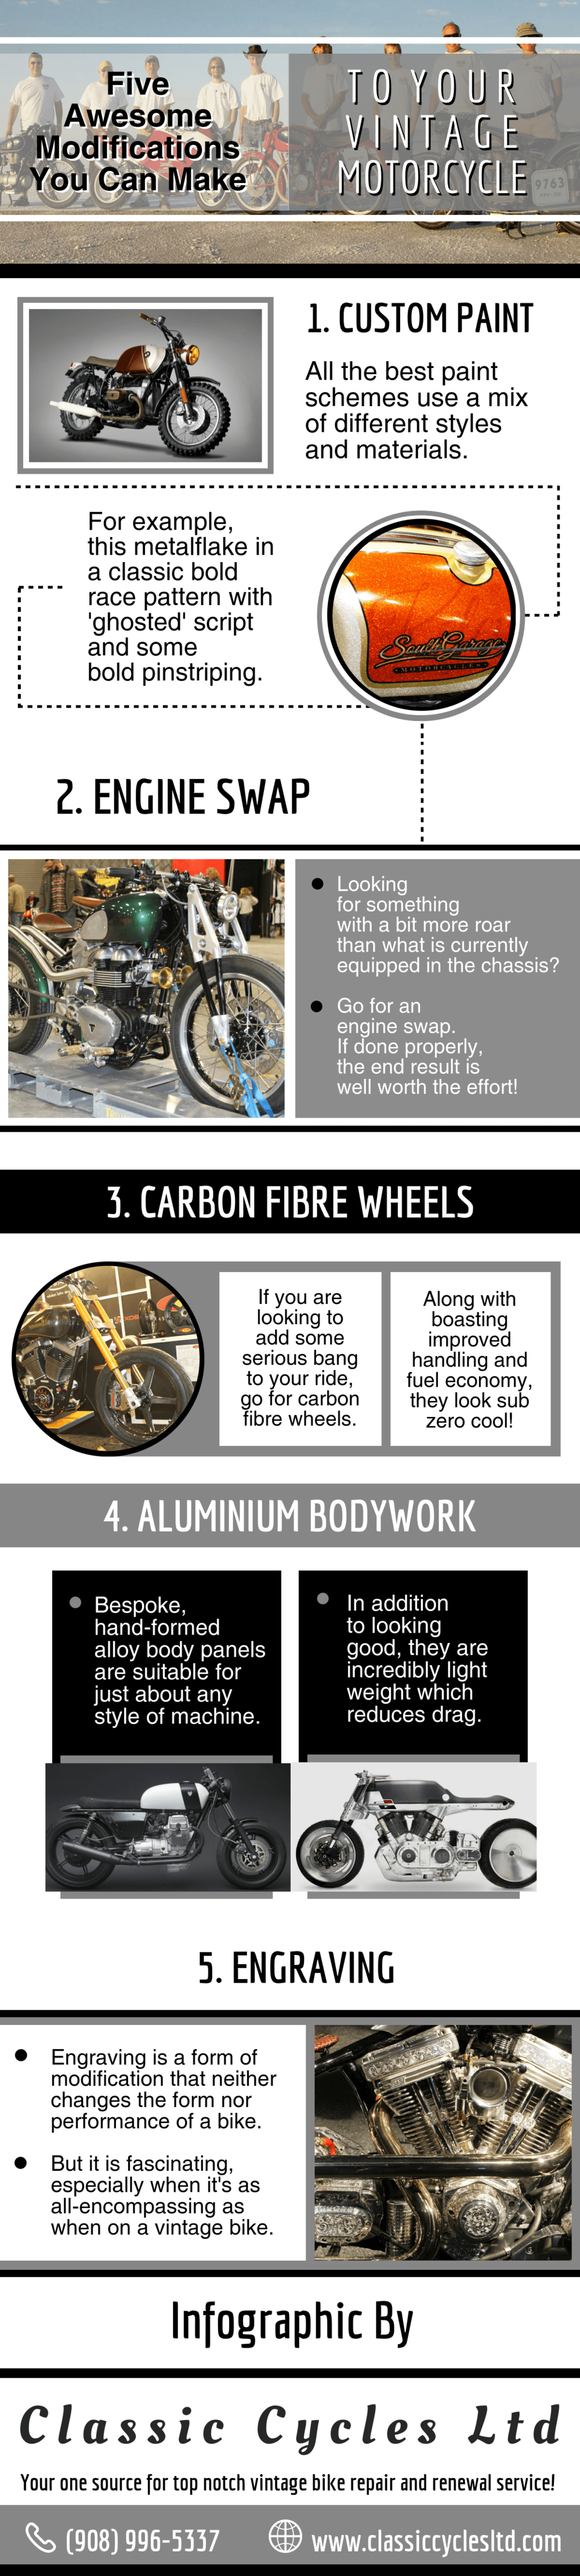 5 Awesome Modifications You Can Make To Your Vintage Motorcycle.png